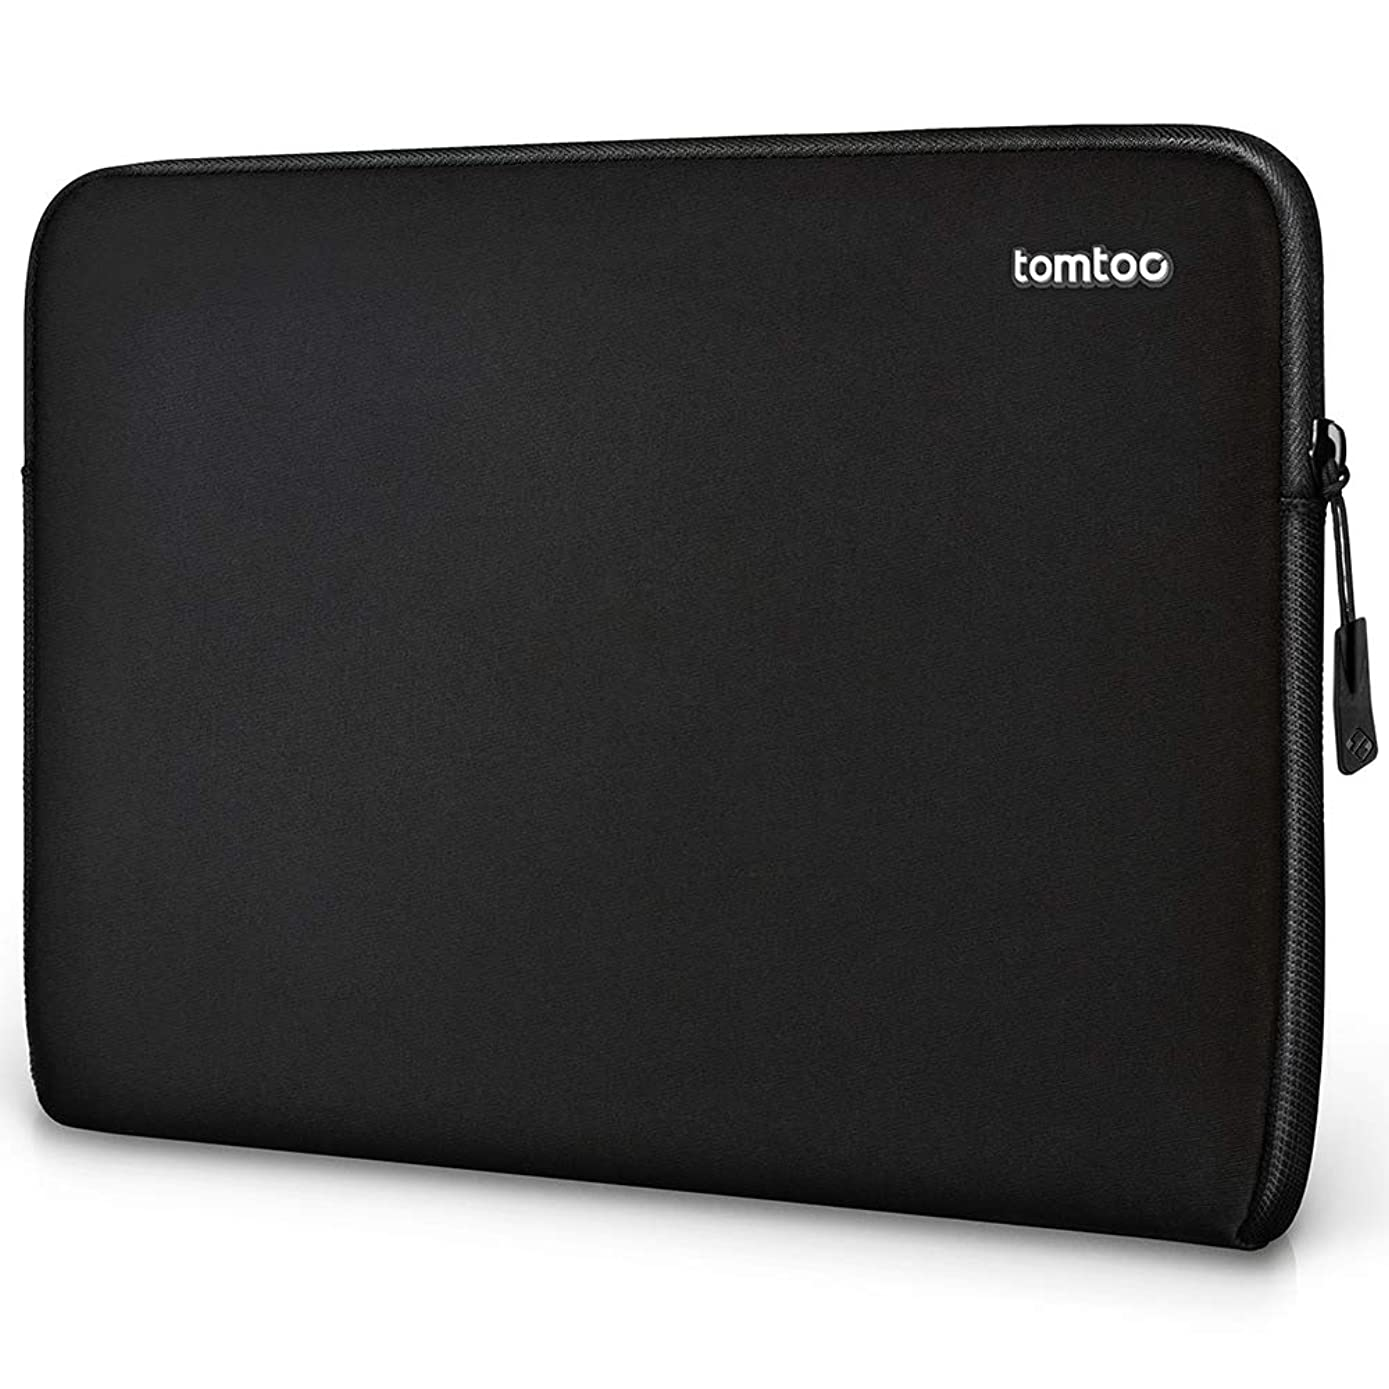 tomtoc Laptop Sleeve Fit 2018 New MacBook Air 13-inch with Retina Display A1932   13-inch MacBook Pro Thunderbolt 3 (USB-C) A1989 A1706 A1708   Microsoft Surface Pro 6/5/4/3   Dell XPS 13